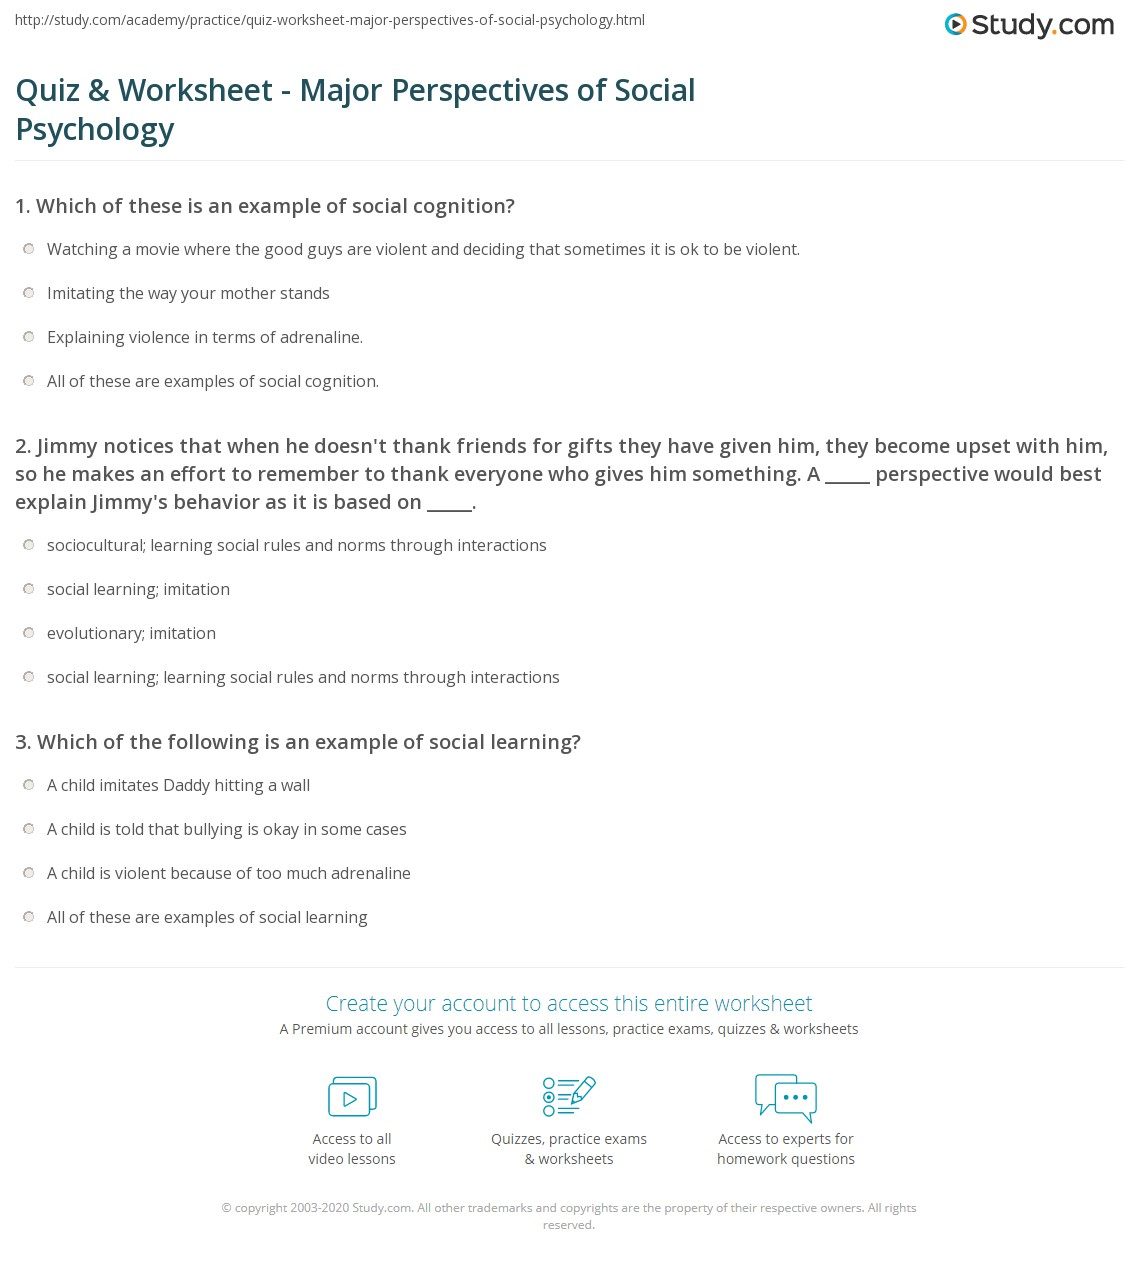 Worksheets Free Cbt Worksheets printables psychology worksheets whelper free cbt for therapy self help pdf tools interoceptive exposure worksheet information